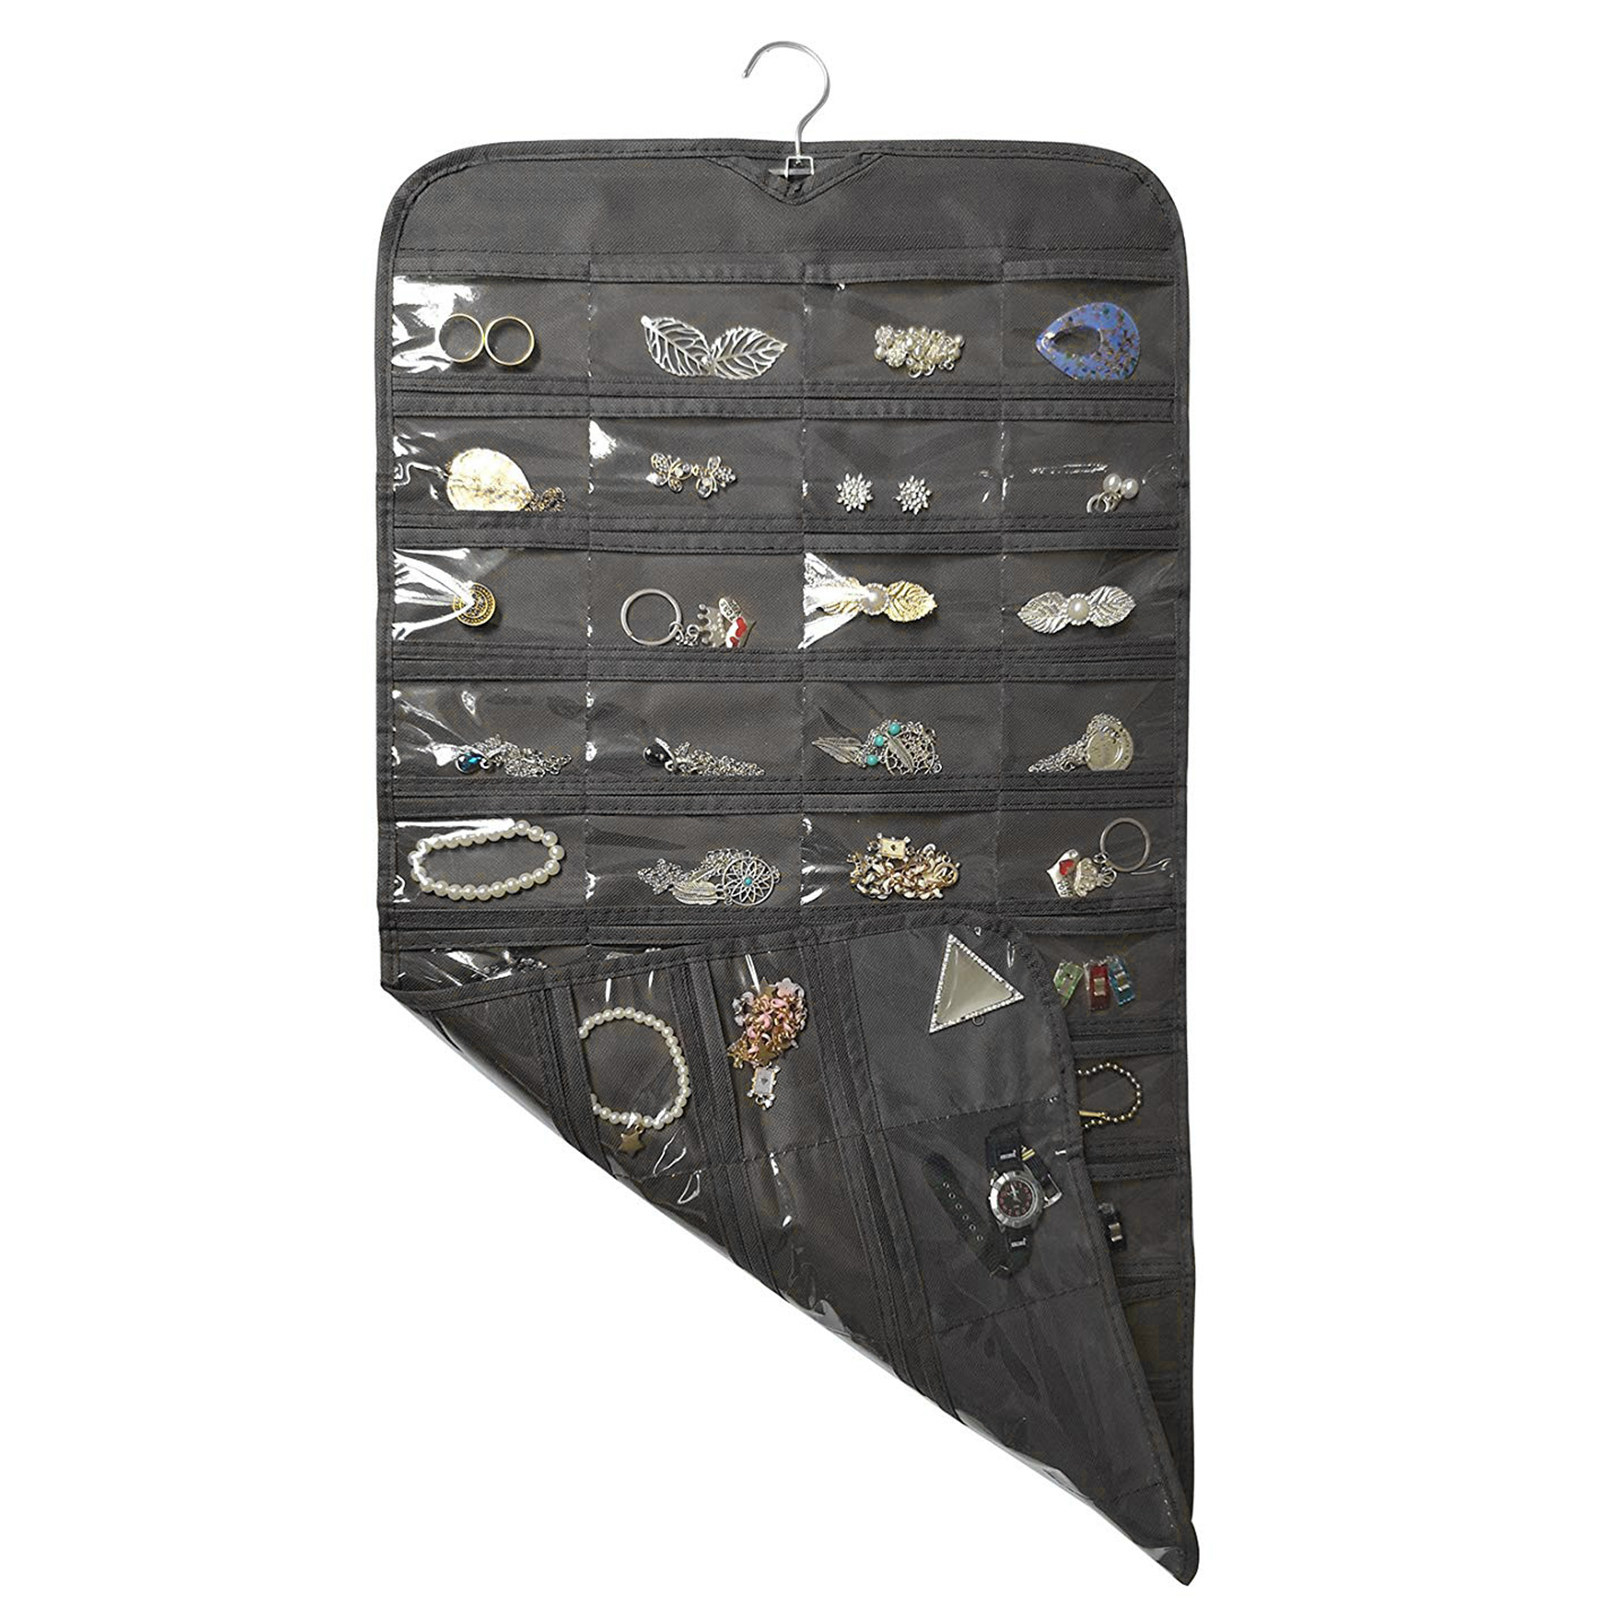 The blackhanging jewelry organizer with 80 pocket pouches